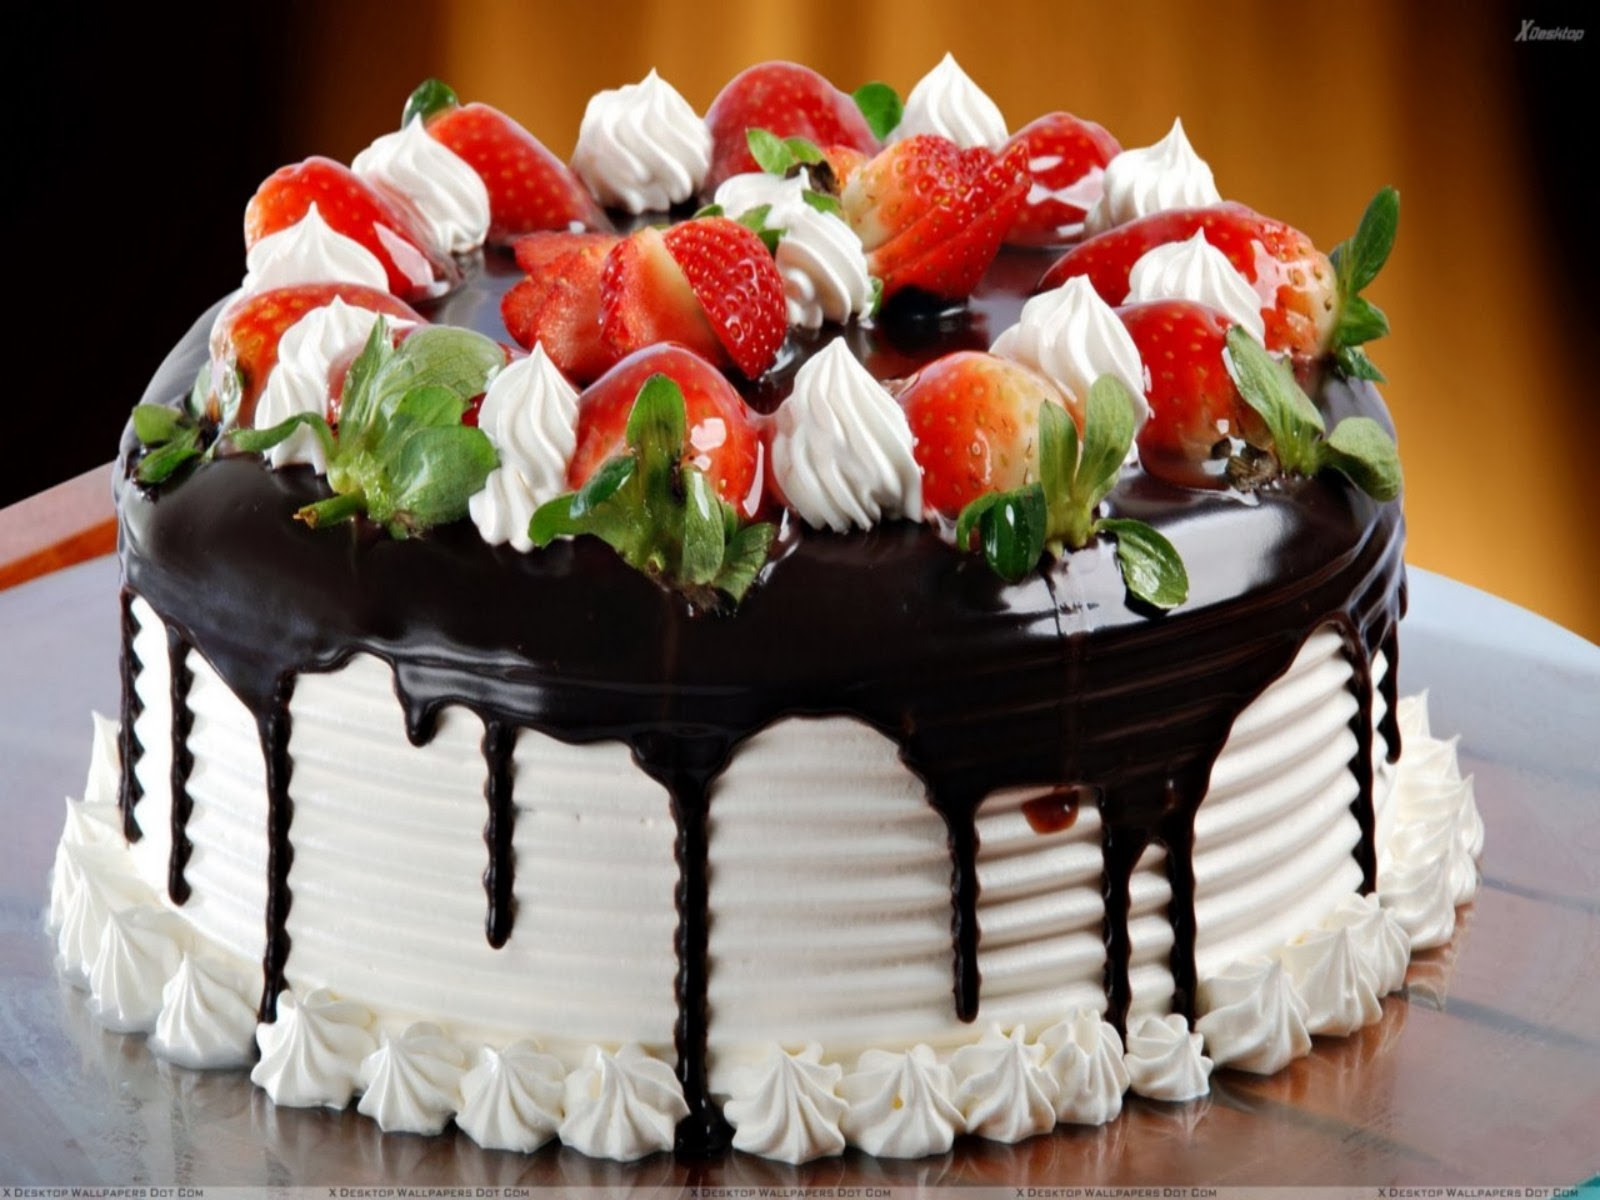 Best ideas about Happy Birthday Cake Pictures . Save or Pin cack image wallpapers Mobile wallpapers Now.